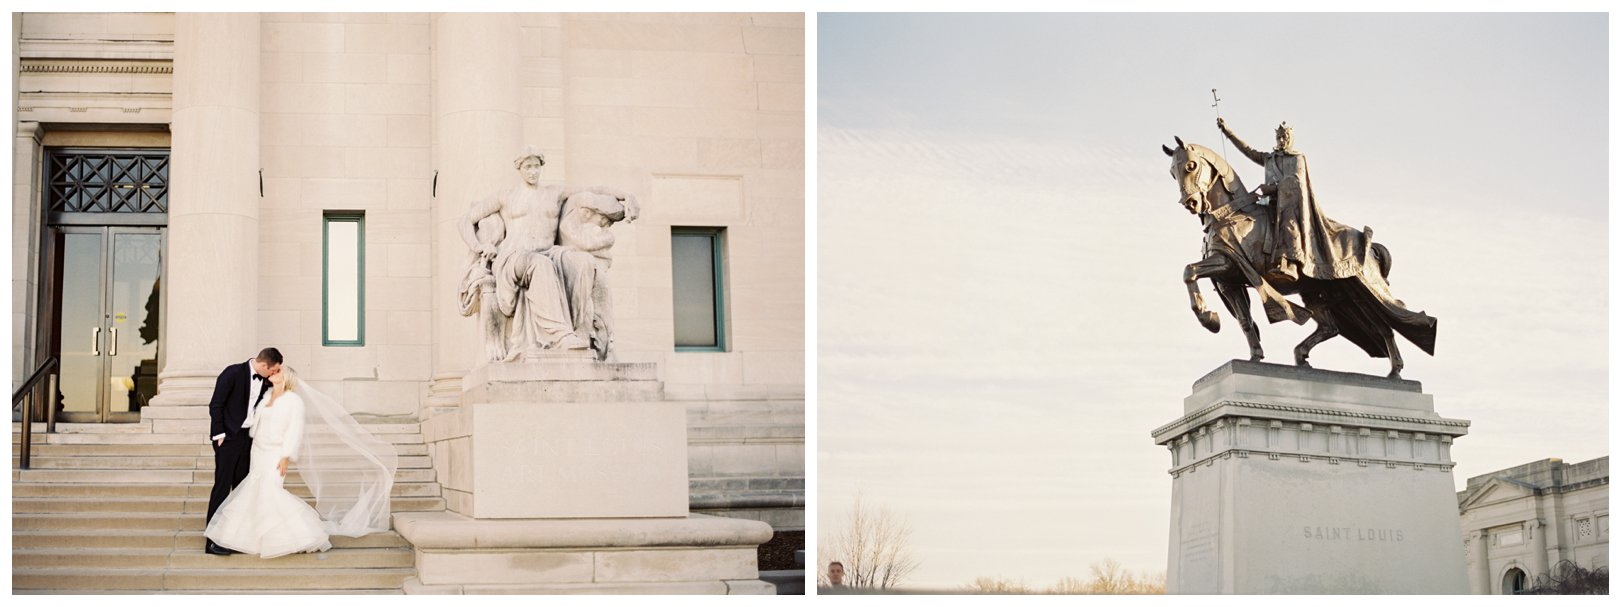 lauren muckler photography_fine art film wedding photography_st louis_photography_1365.jpg